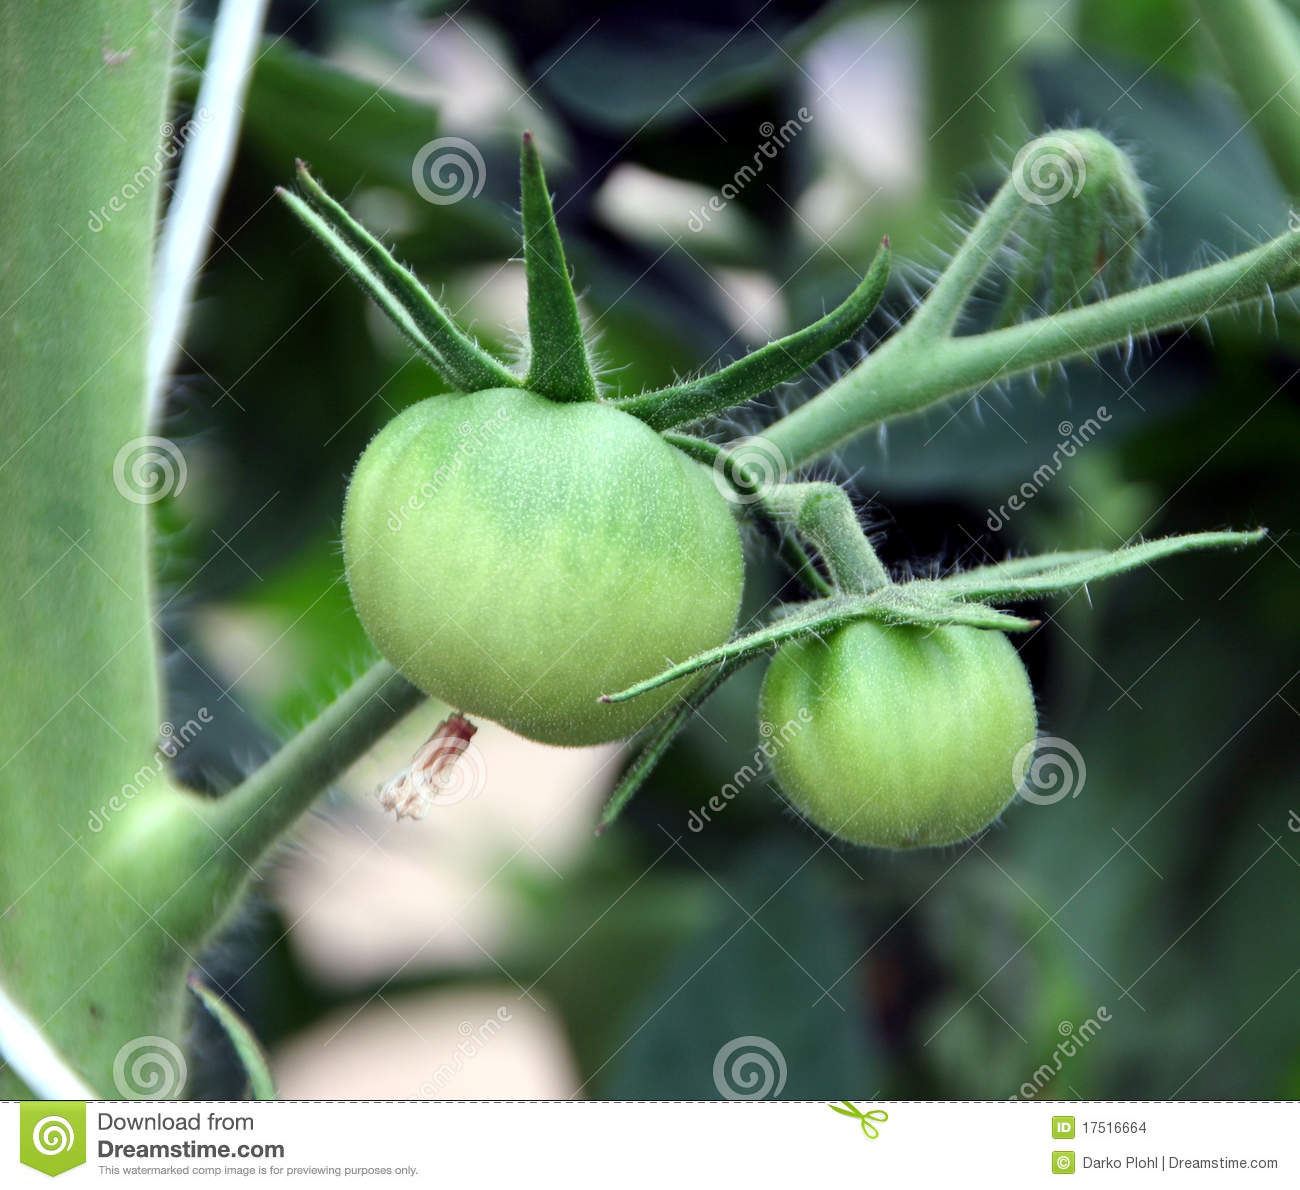 is the tomato a fruit or a vegetable fresh fruit